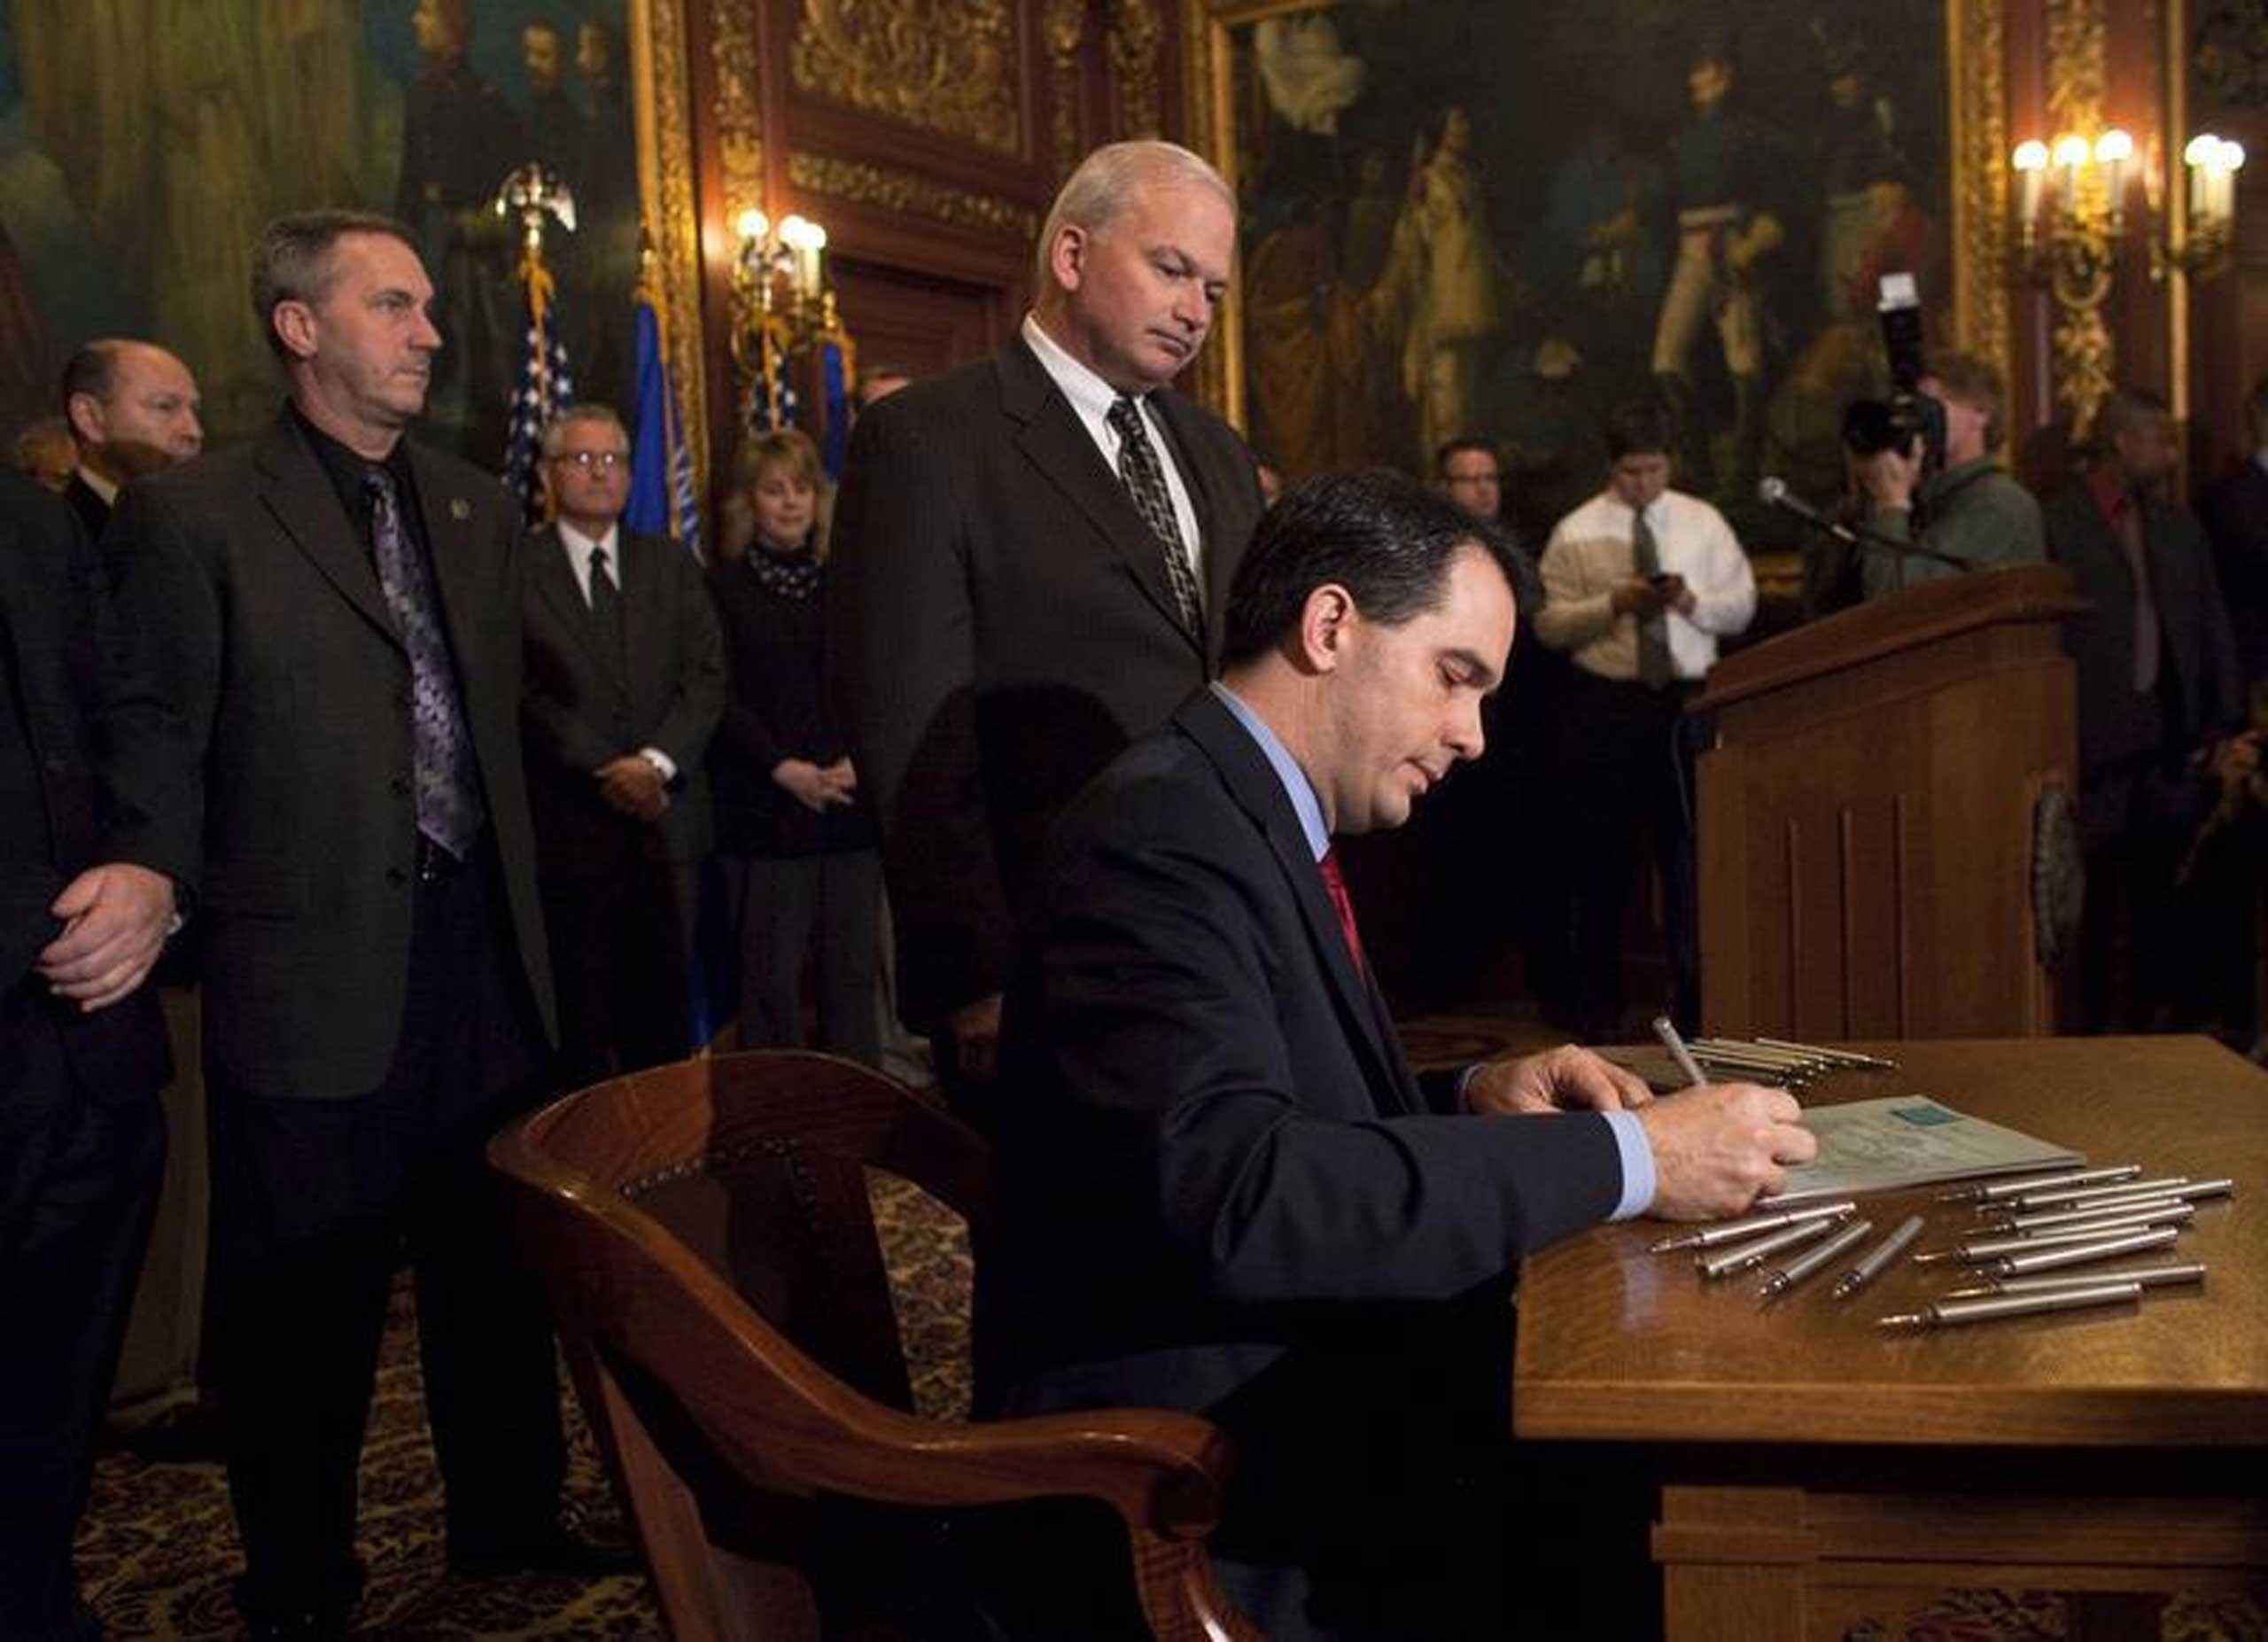 Wisconsin State Governor Scott Walker signs the ceremonial bill, after the Republican-controlled House and Senate eliminated almost all collective bargaining for most public workers at the state Capitol in Madison Wis., March 11, 2011.